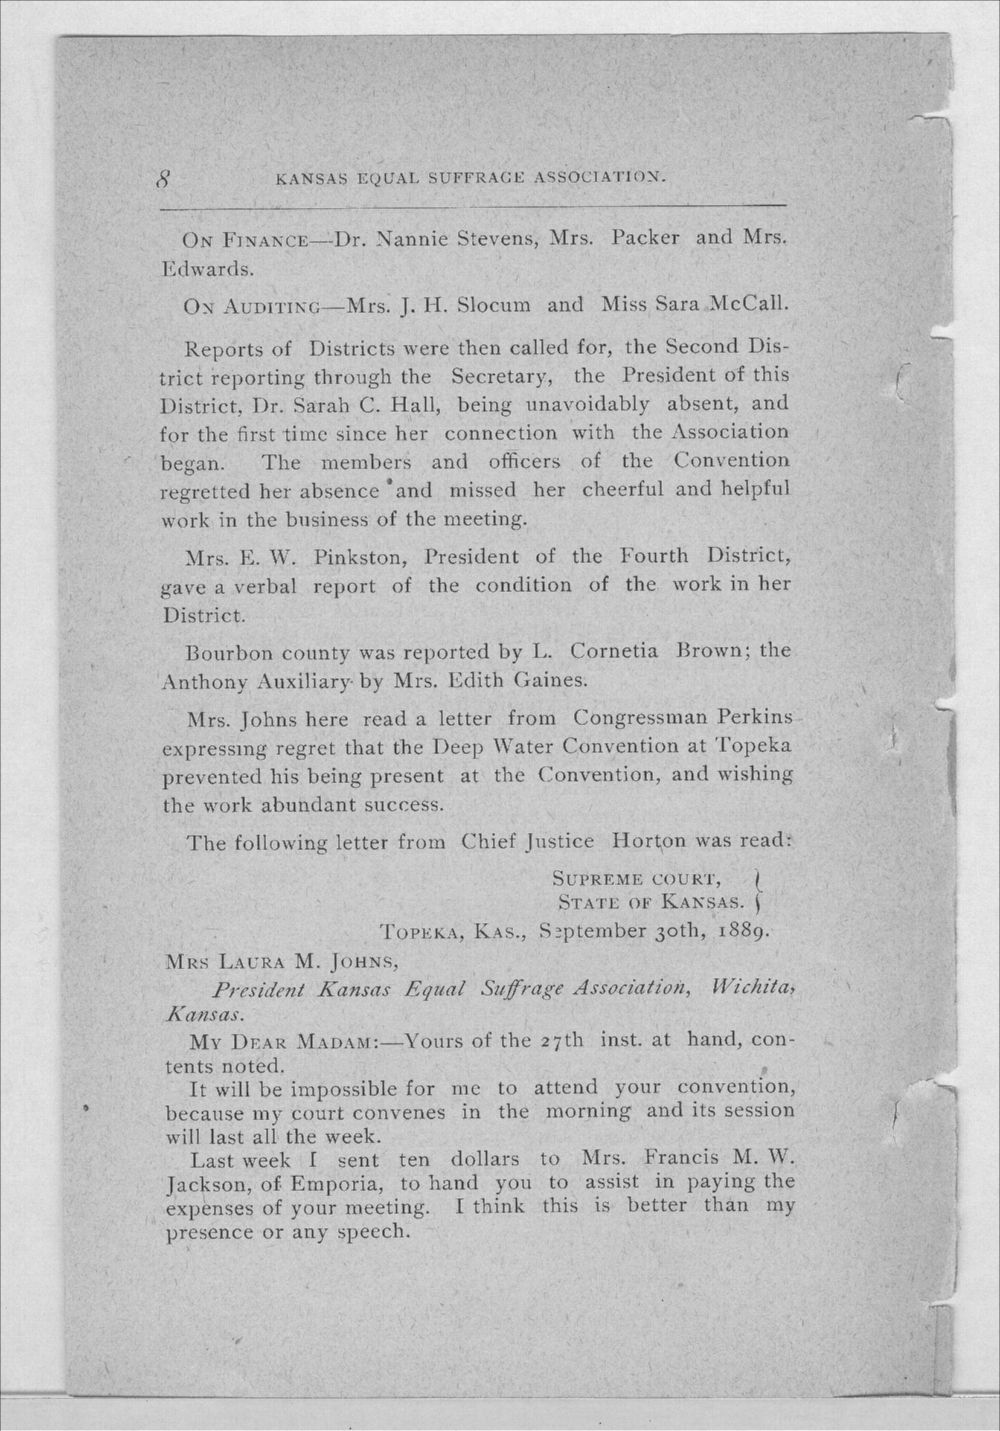 Minutes of the Kansas Equal Suffrage Association at the sixth annual meeting in 1889 - 8